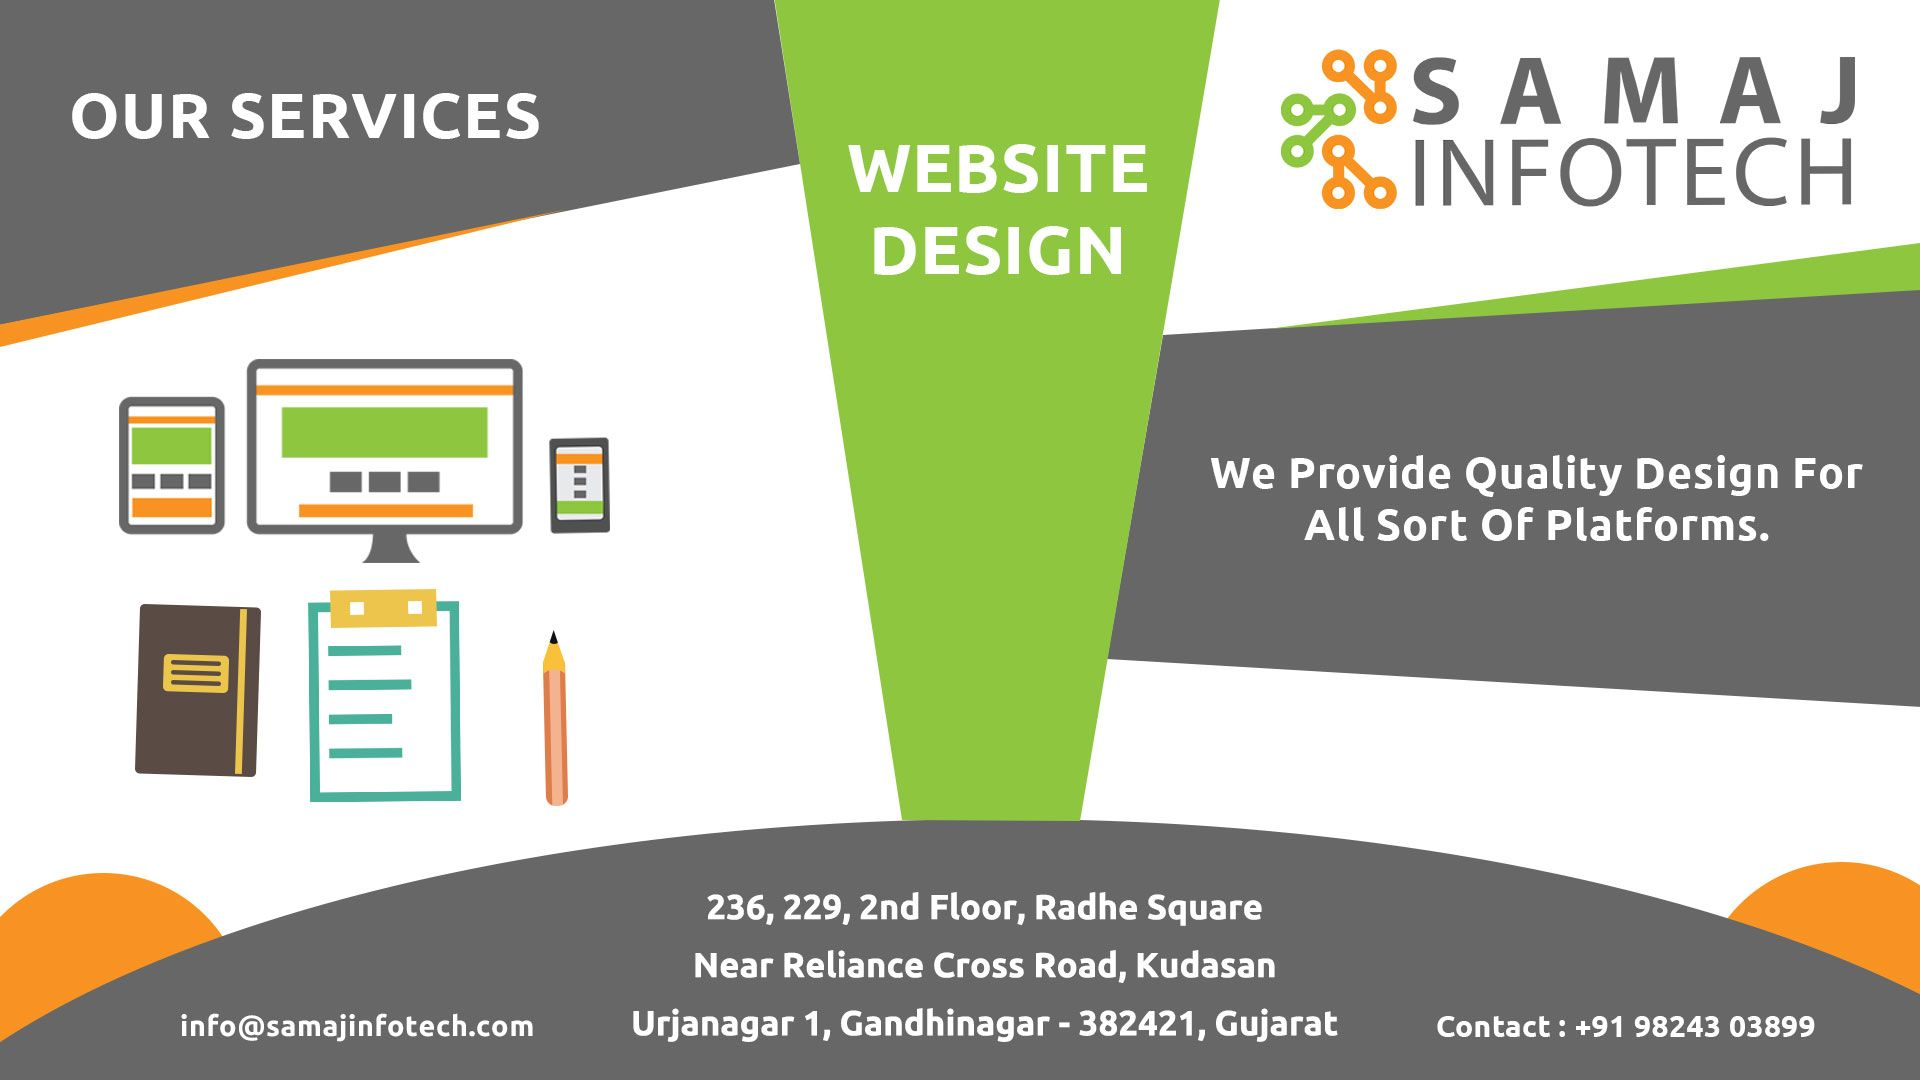 Web Design Professional Website Design Company Samaj Infotech Webdesign Websitedesign Webdesignfirm Web Design Website Design Website Design Company